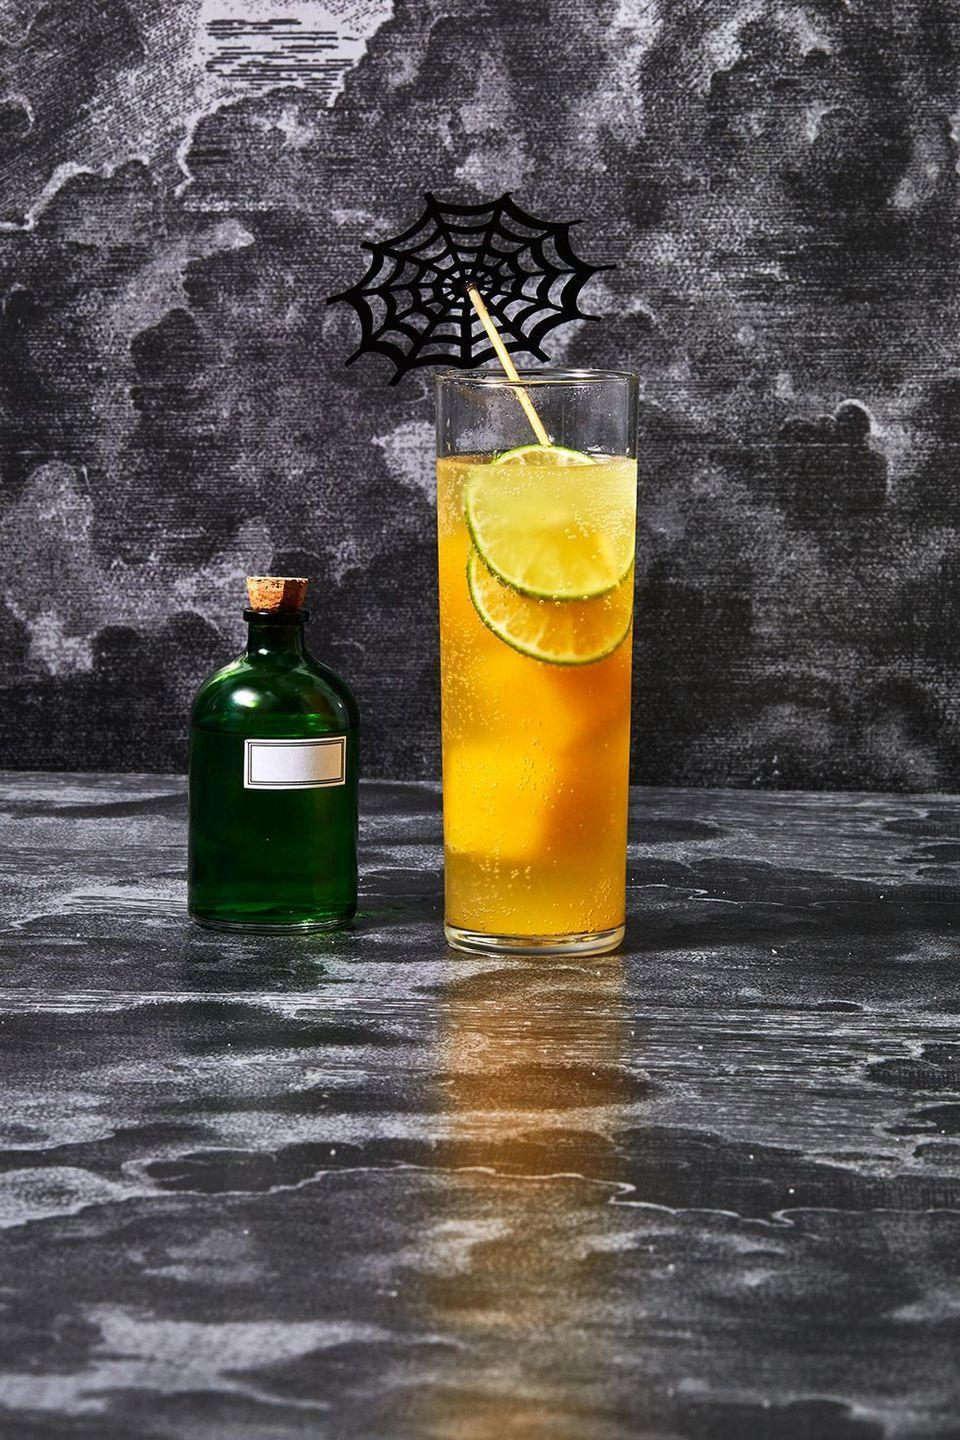 """<p>Get cozy with your new favorite fall cocktail recipe. Take a sip of citrus. Easy on the eye of newt.</p><p><em><a href=""""https://www.goodhousekeeping.com/food-recipes/a34331044/witches-brew-cocktail-recipe/"""" rel=""""nofollow noopener"""" target=""""_blank"""" data-ylk=""""slk:Get the recipe for Witches' Brew Cocktail »"""" class=""""link rapid-noclick-resp"""">Get the recipe for Witches' Brew Cocktail »</a></em></p><p><strong>RELATED:</strong> <a href=""""https://www.goodhousekeeping.com/food-recipes/g28669841/best-classic-cocktails/"""" rel=""""nofollow noopener"""" target=""""_blank"""" data-ylk=""""slk:16 Totally Delicious Classic Cocktails to Make at Home"""" class=""""link rapid-noclick-resp"""">16 Totally Delicious Classic Cocktails to Make at Home</a><br></p>"""